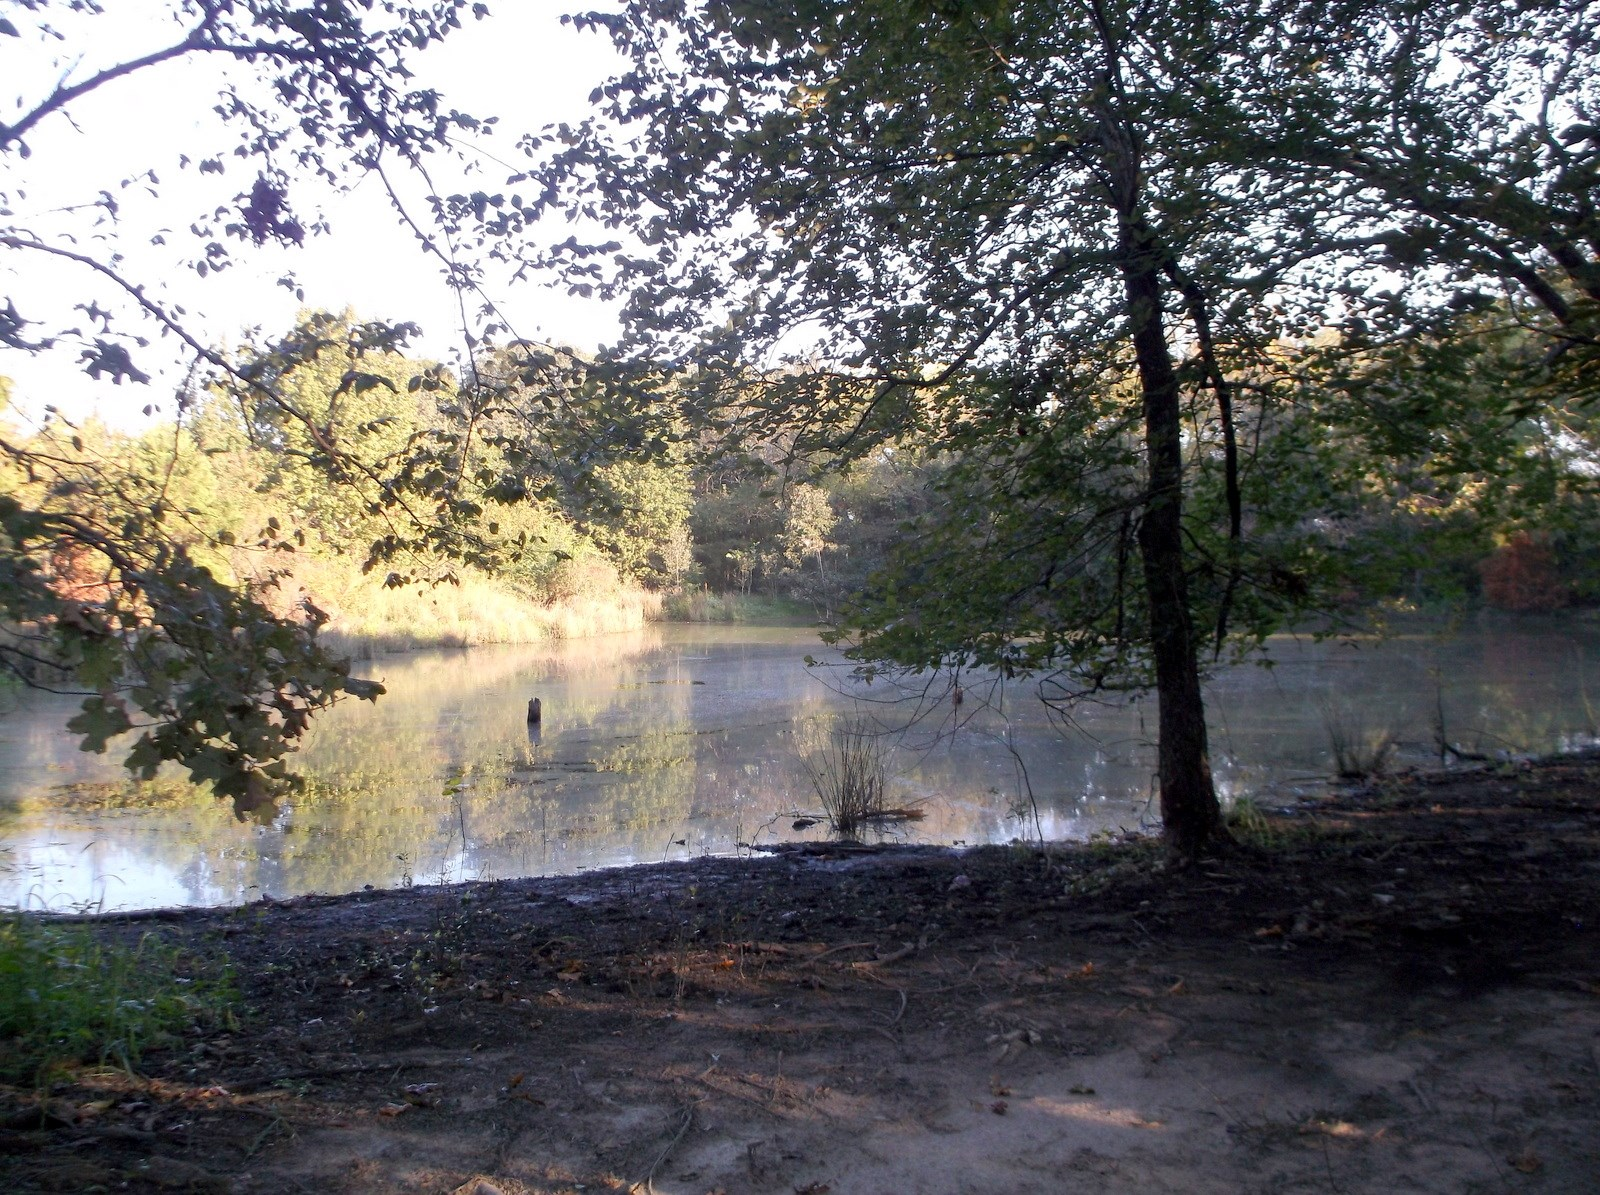 OVER 81 ACRES - HUNT - FARM - BUILD HERE - EAST TEXAS LAND